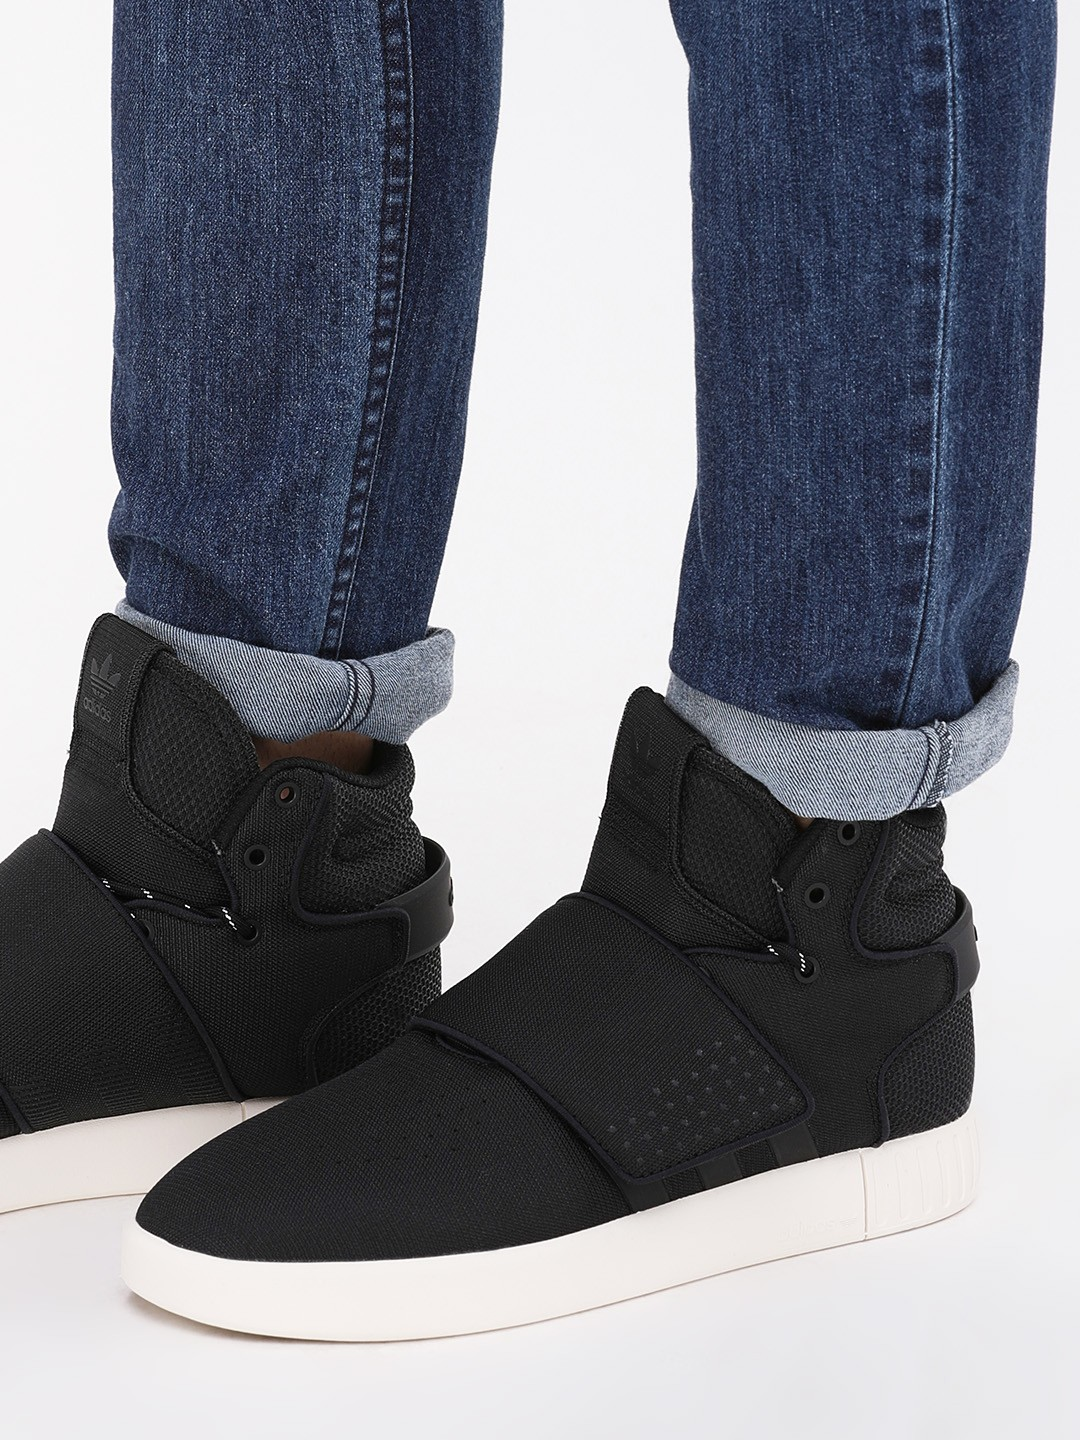 low priced c60c0 a0557 Buy Adidas Originals Black Tubular Invader Strap Sneakers ...